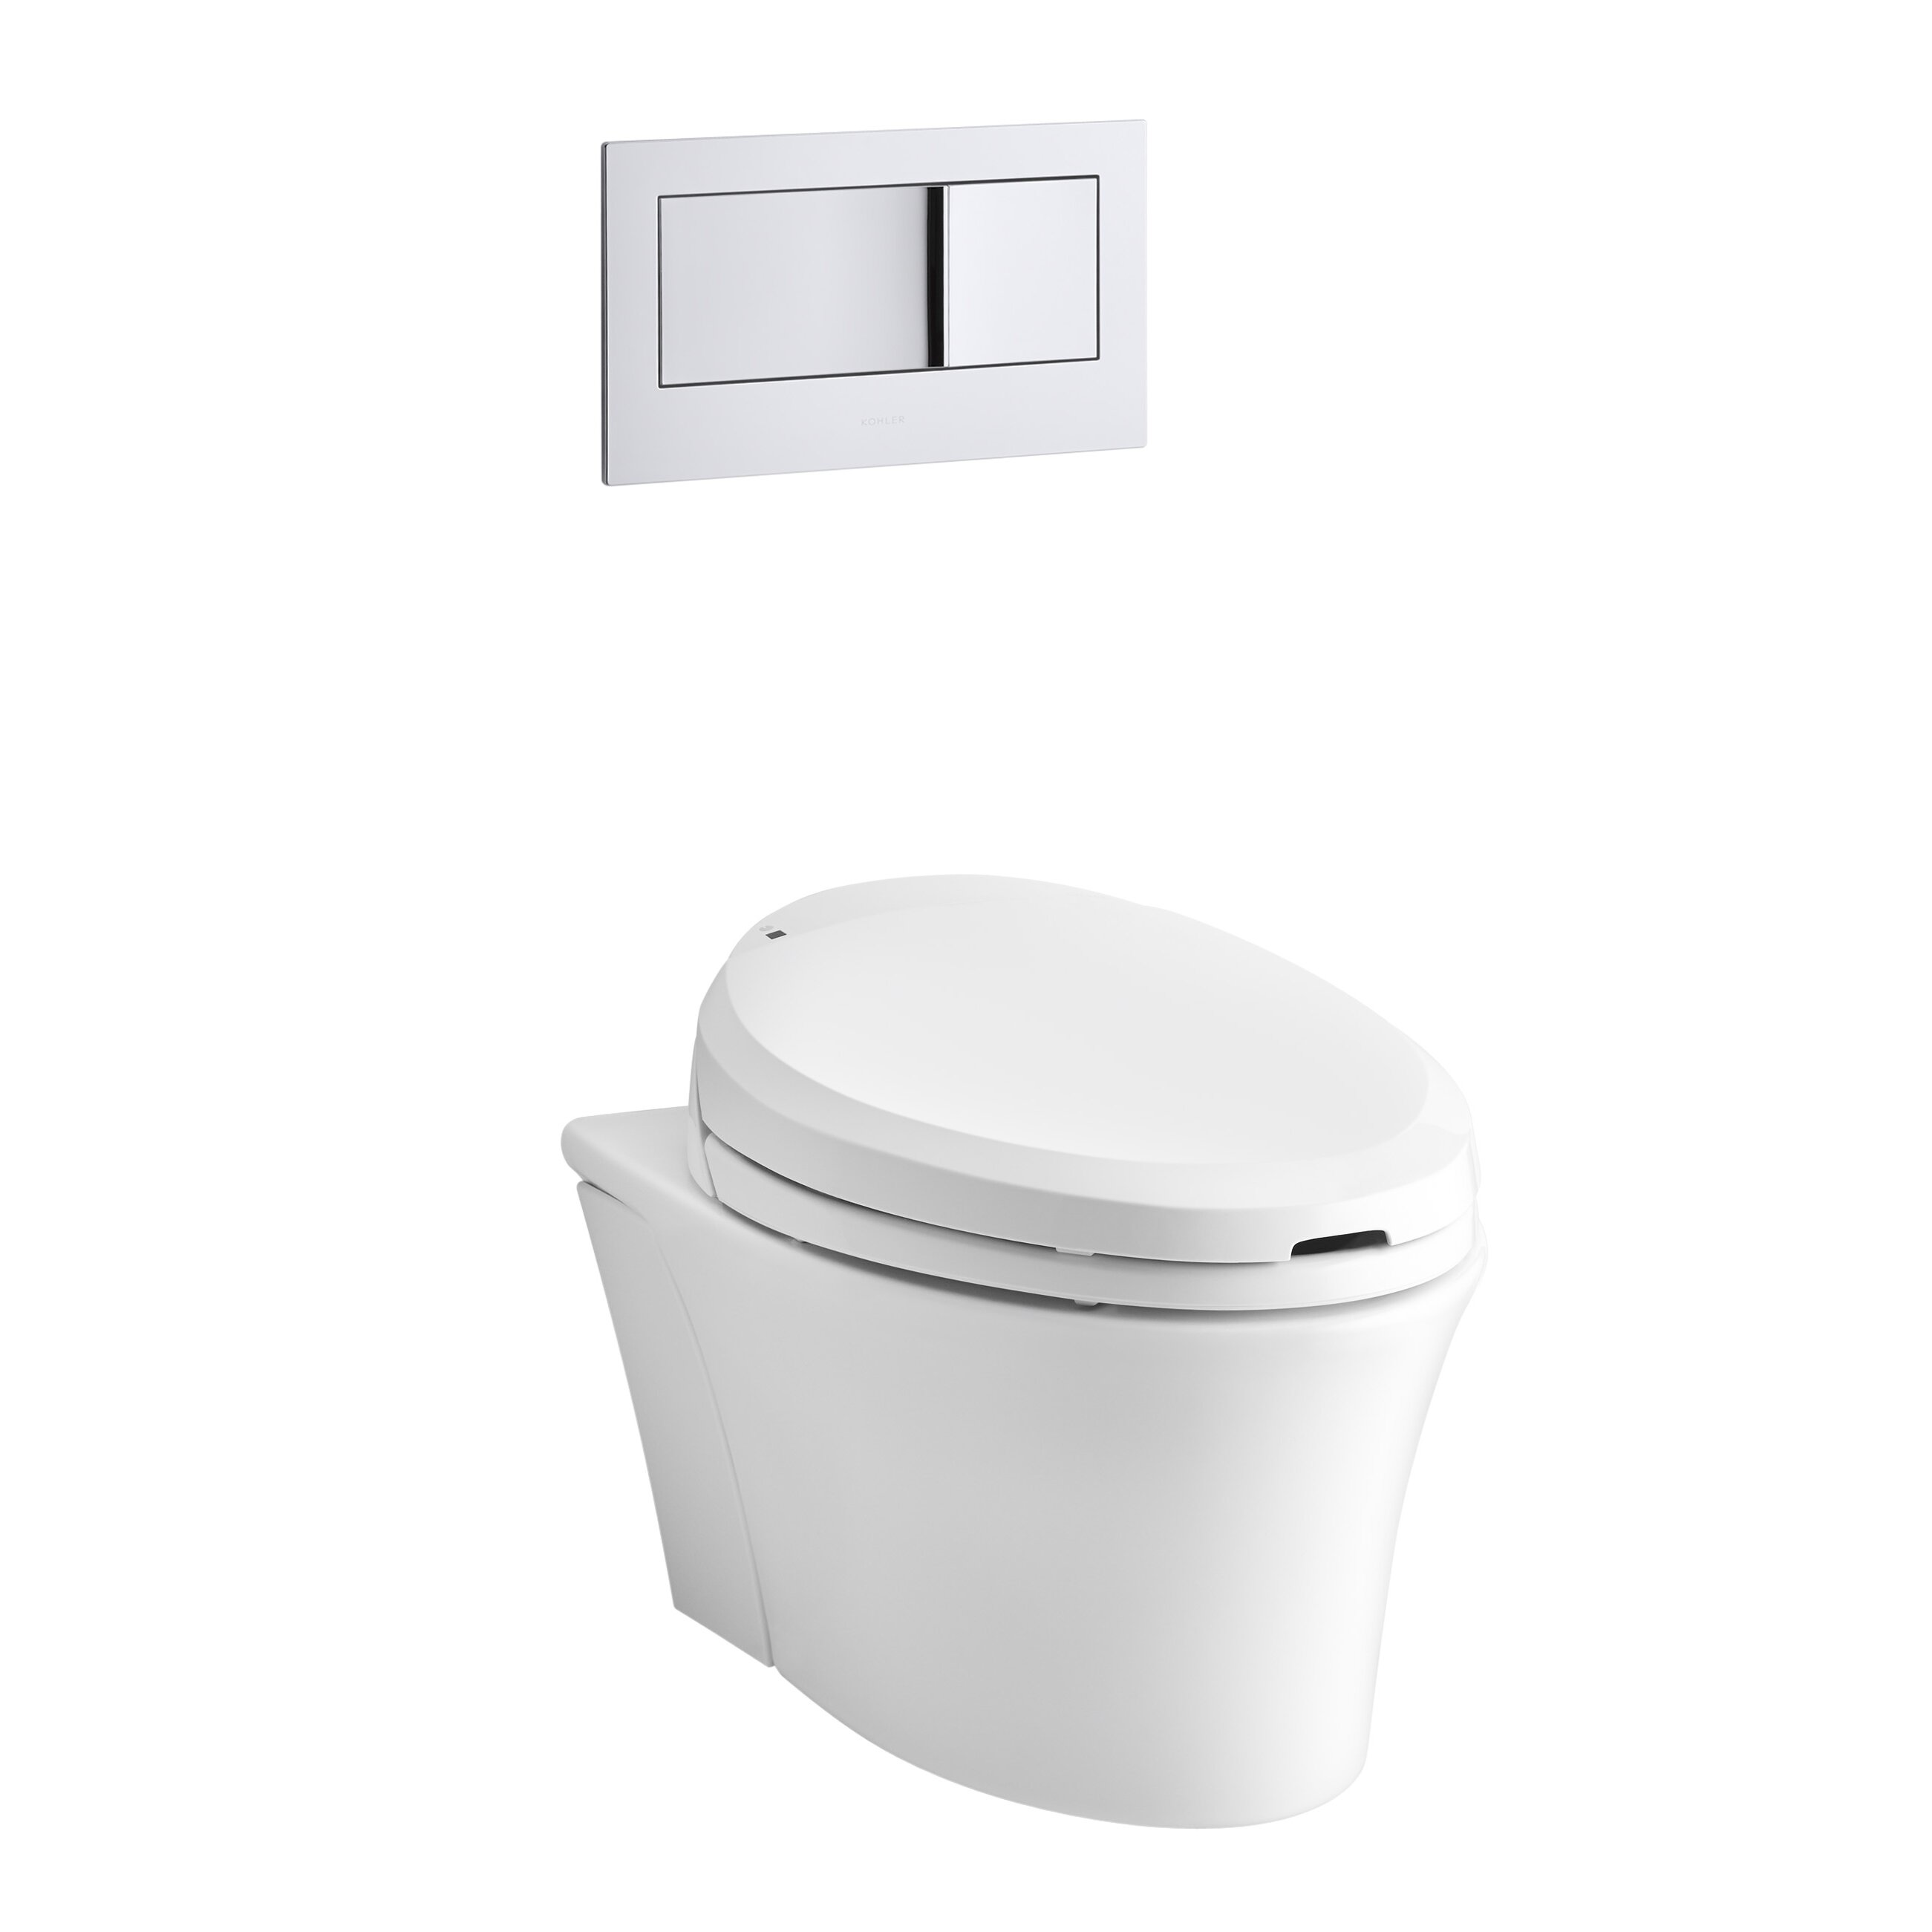 Kohler Veil One Piece Elongated Dual Flush Wall Hung Toilet With C3 Bidet Toi